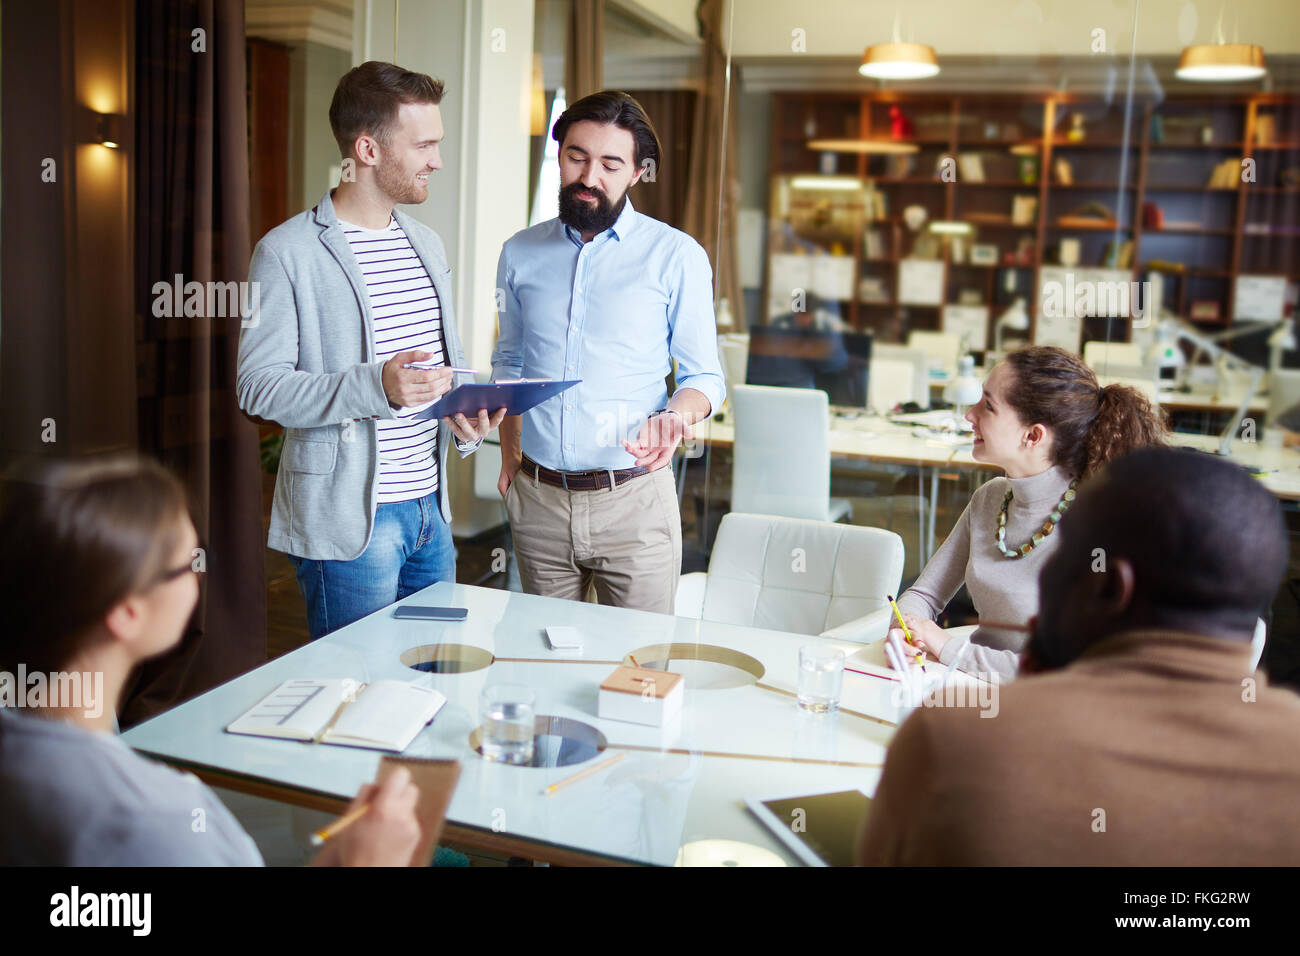 Casual business people working together at office - Stock Image